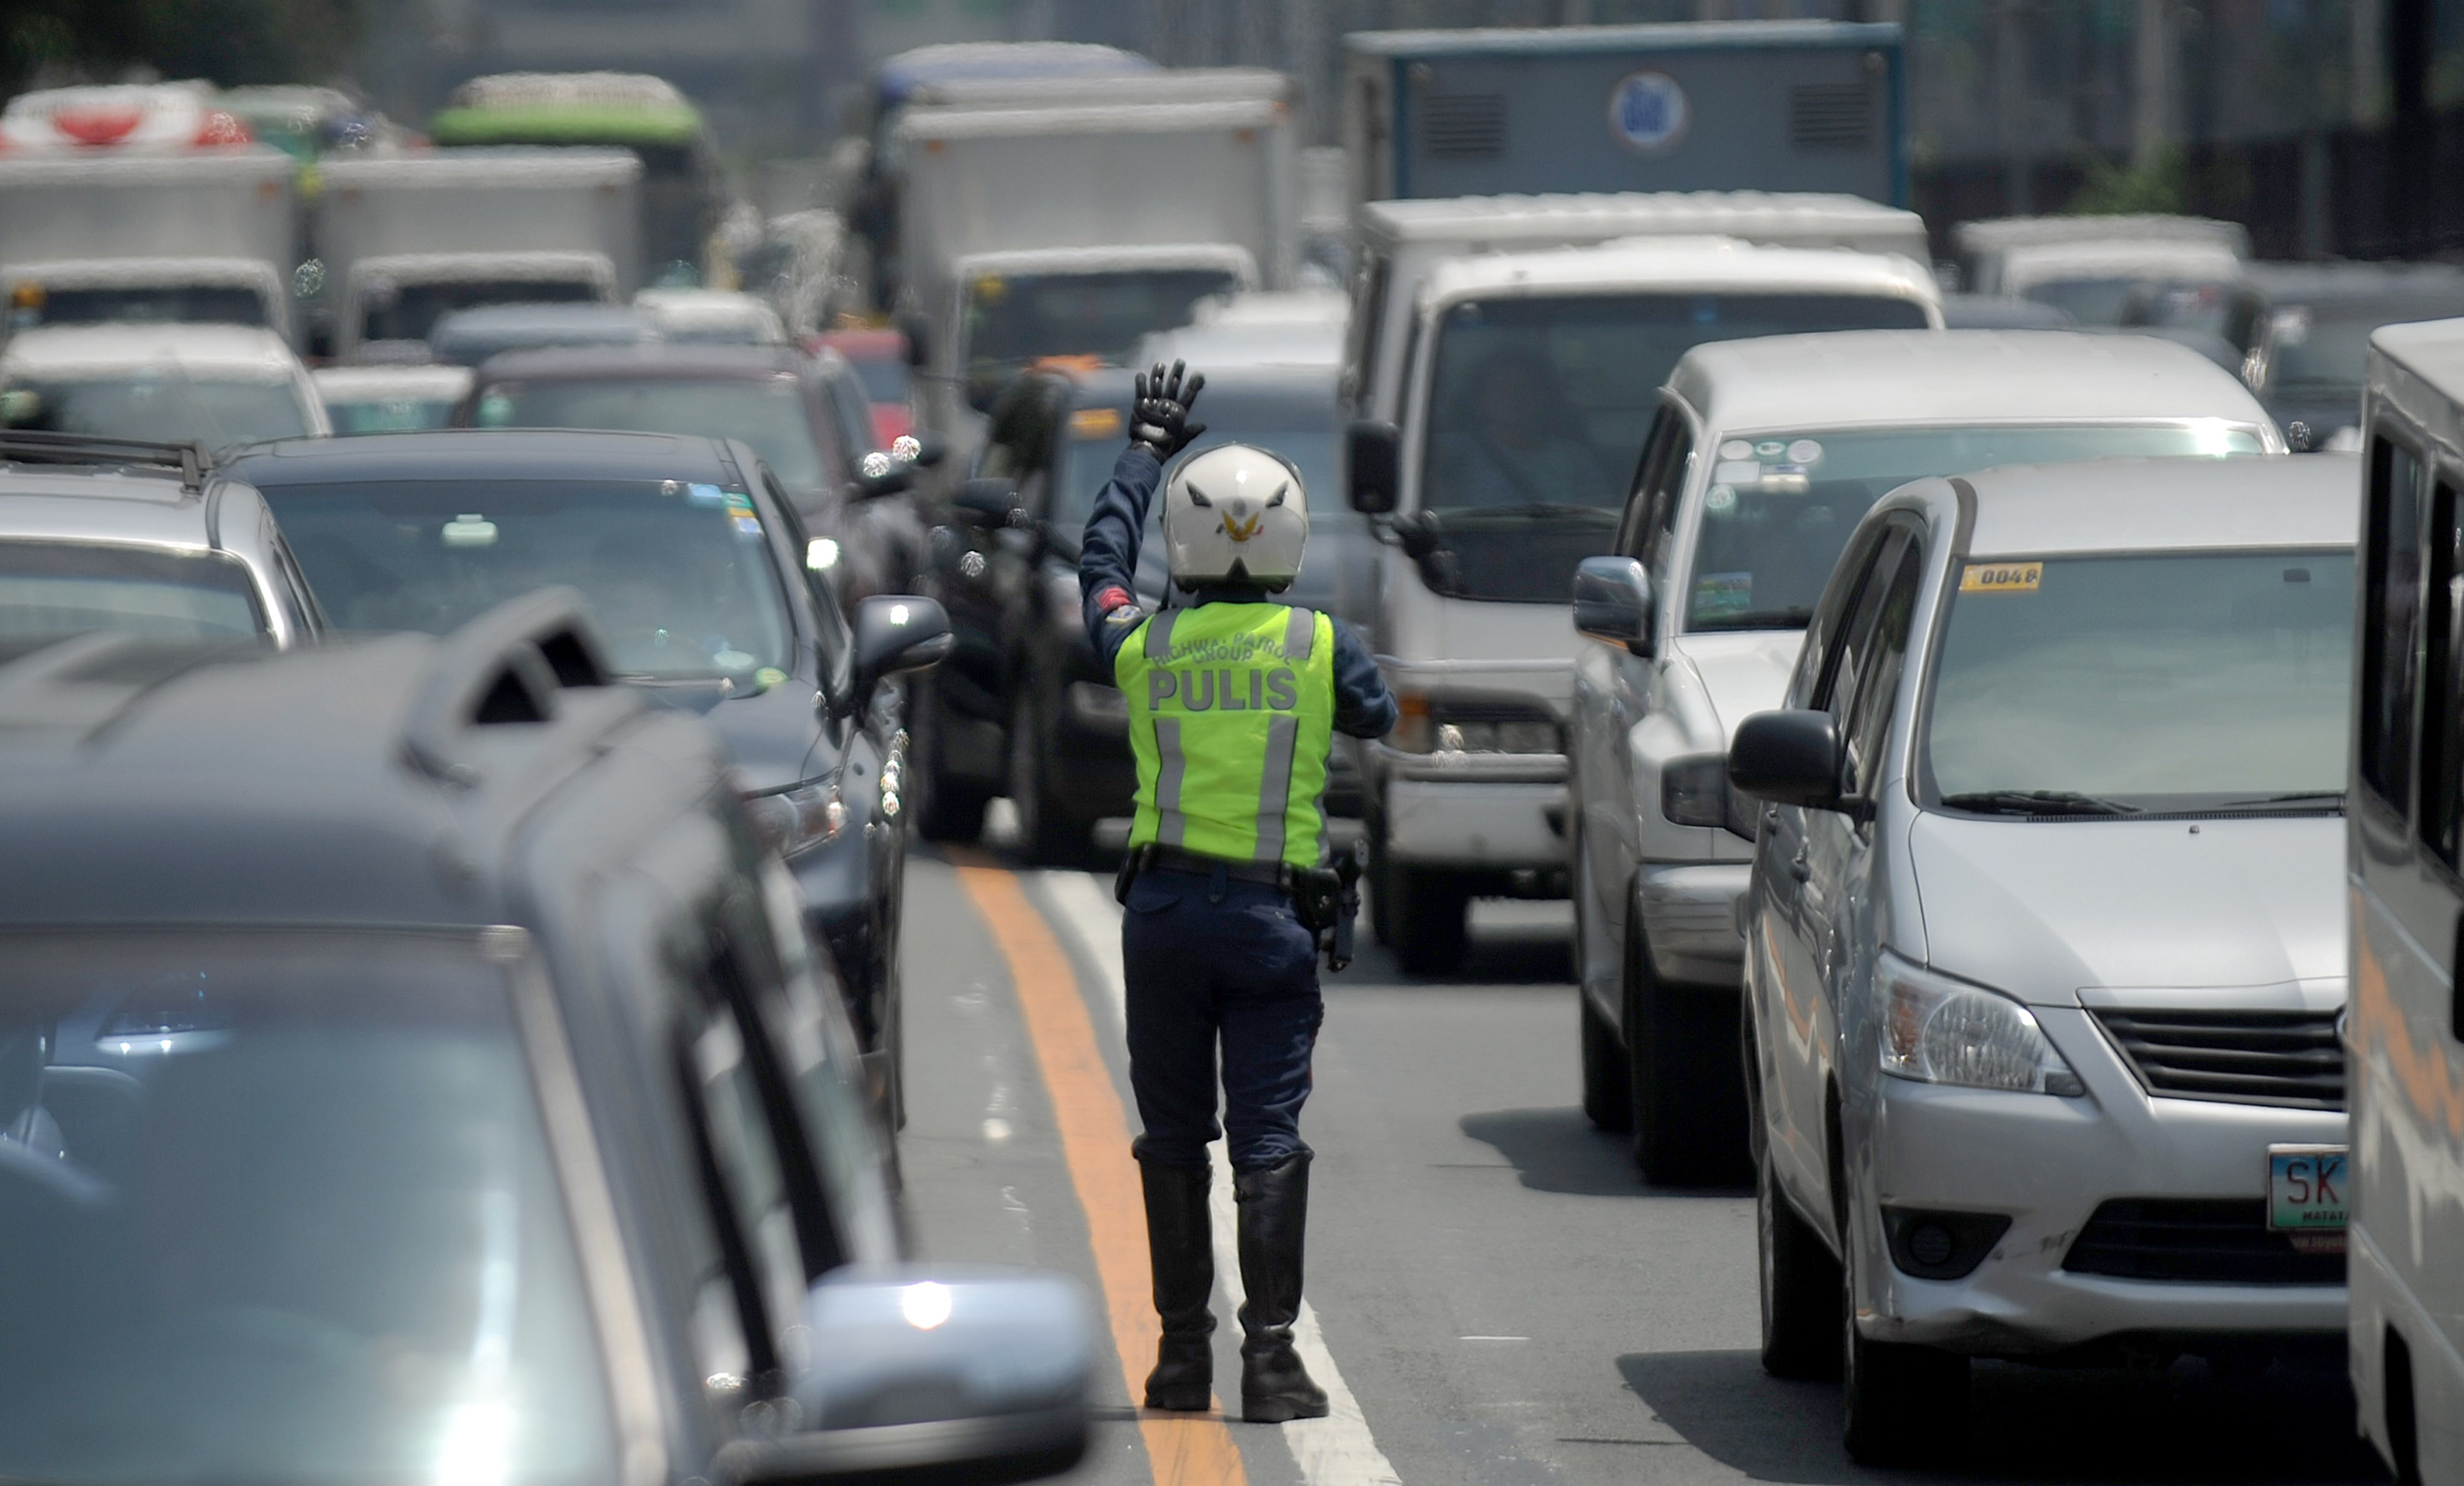 A police officer controls traffic at Epifanio de los Santos Avenue, popularly known as EDSA, in Manila on Sept. 8, 2015